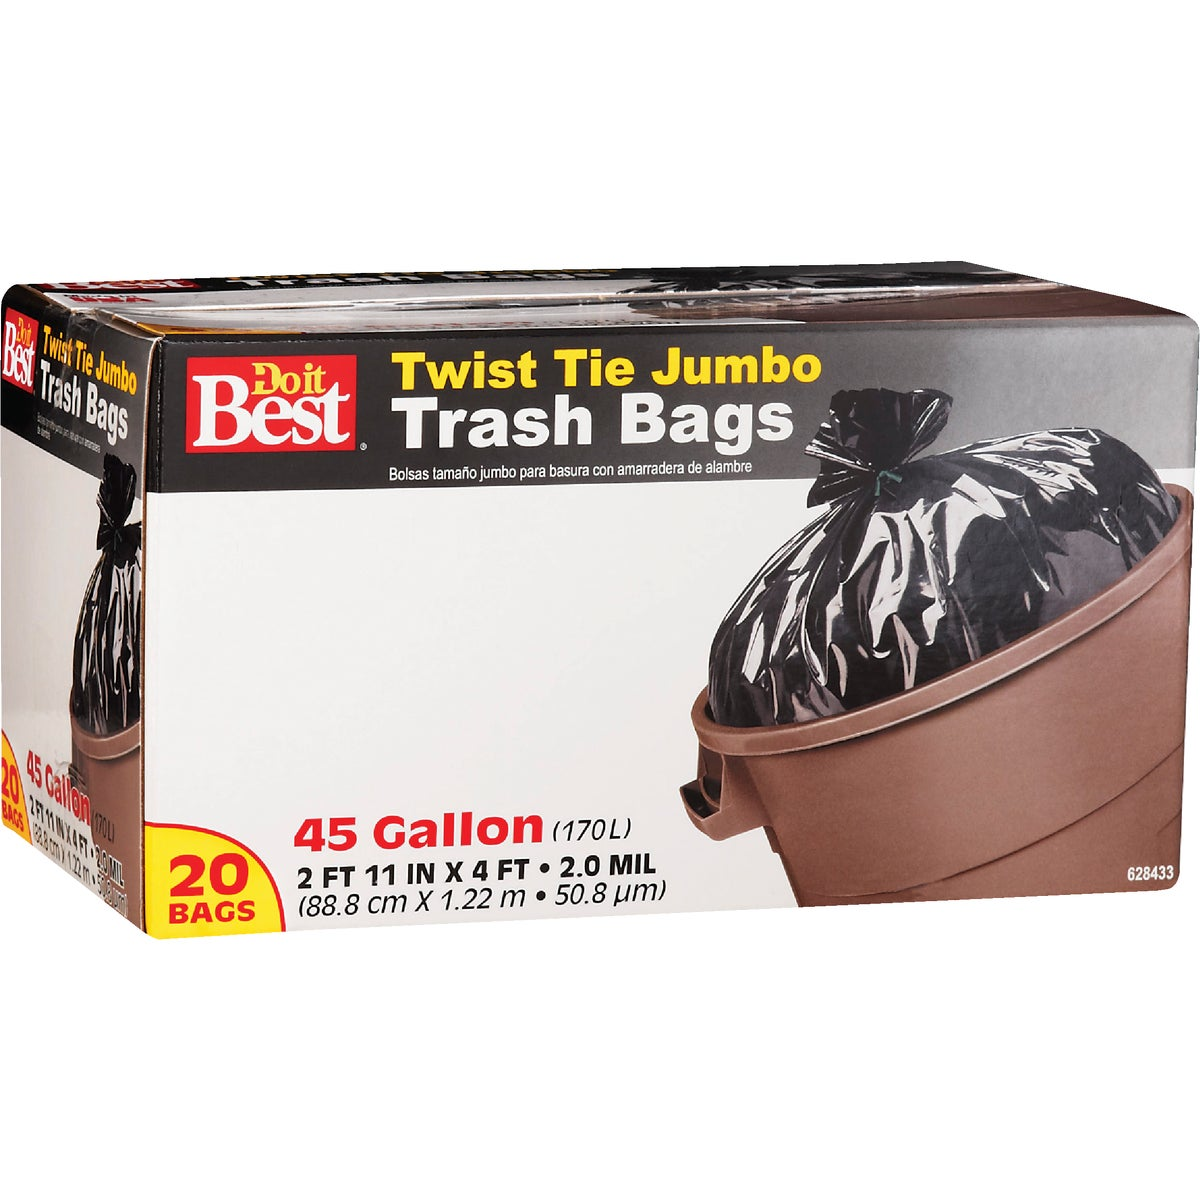 20CT 45GAL TRASH BAG - 628433 by Presto Products